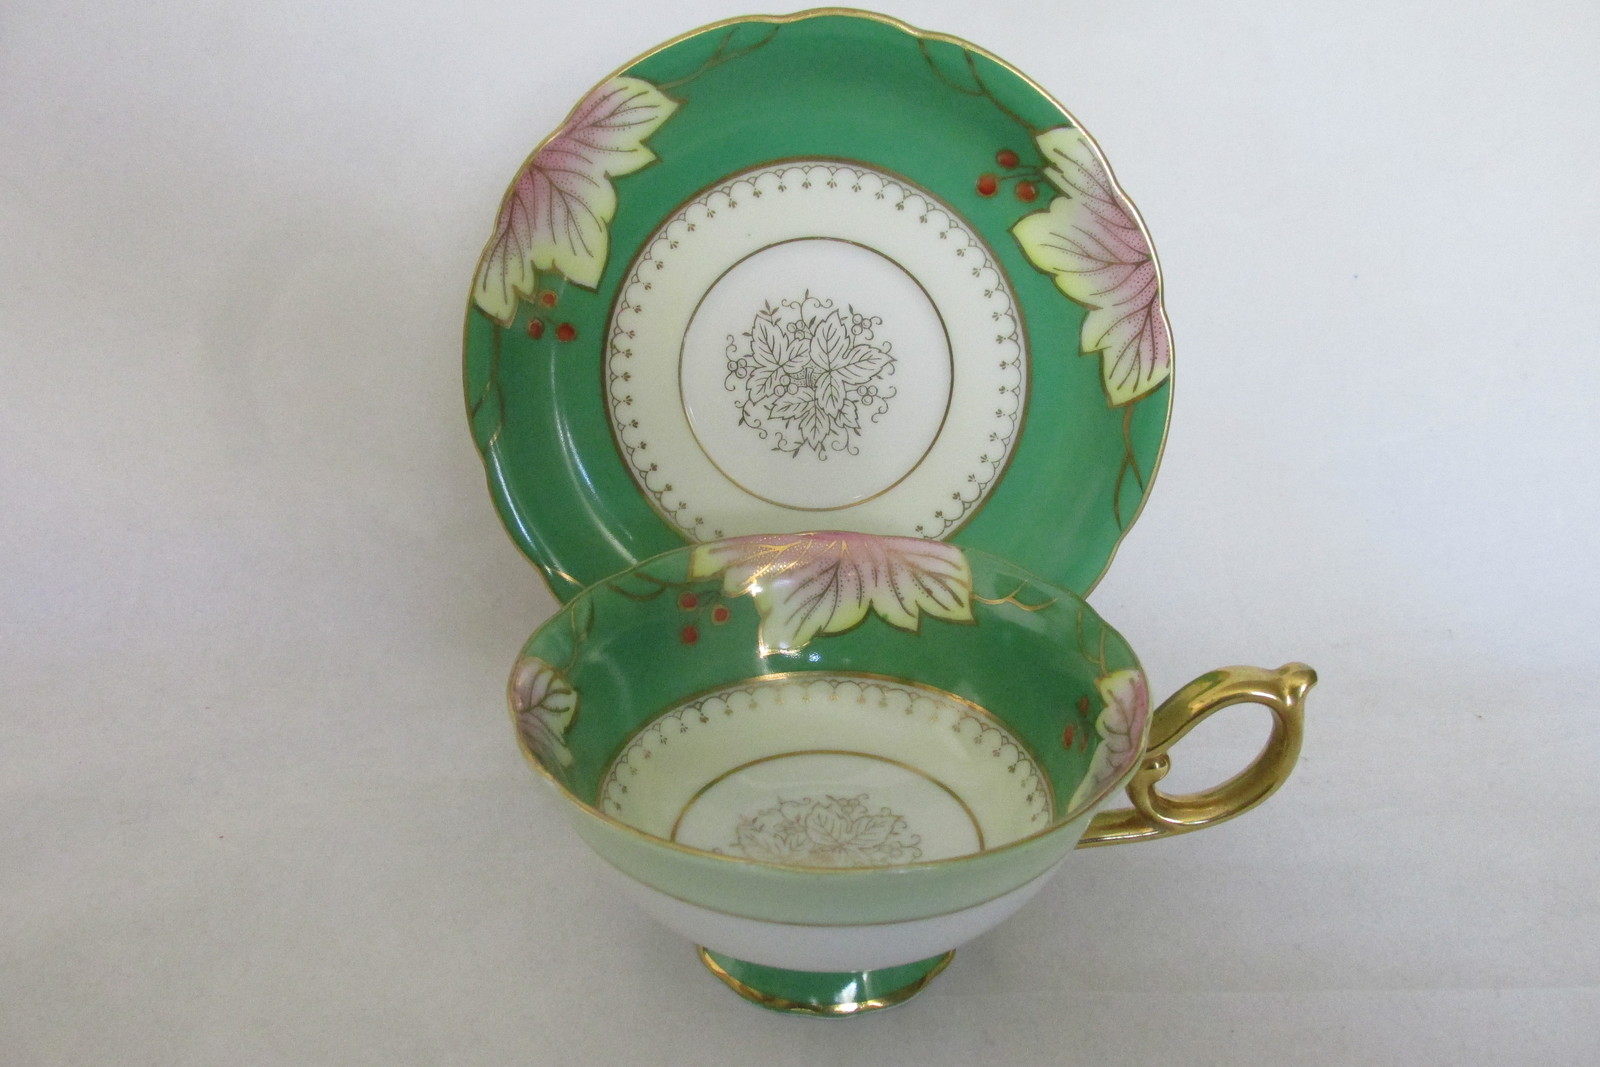 Vintage Shafford Japanese Bone China Cup & Saucer - Leaves & Berries Pattern